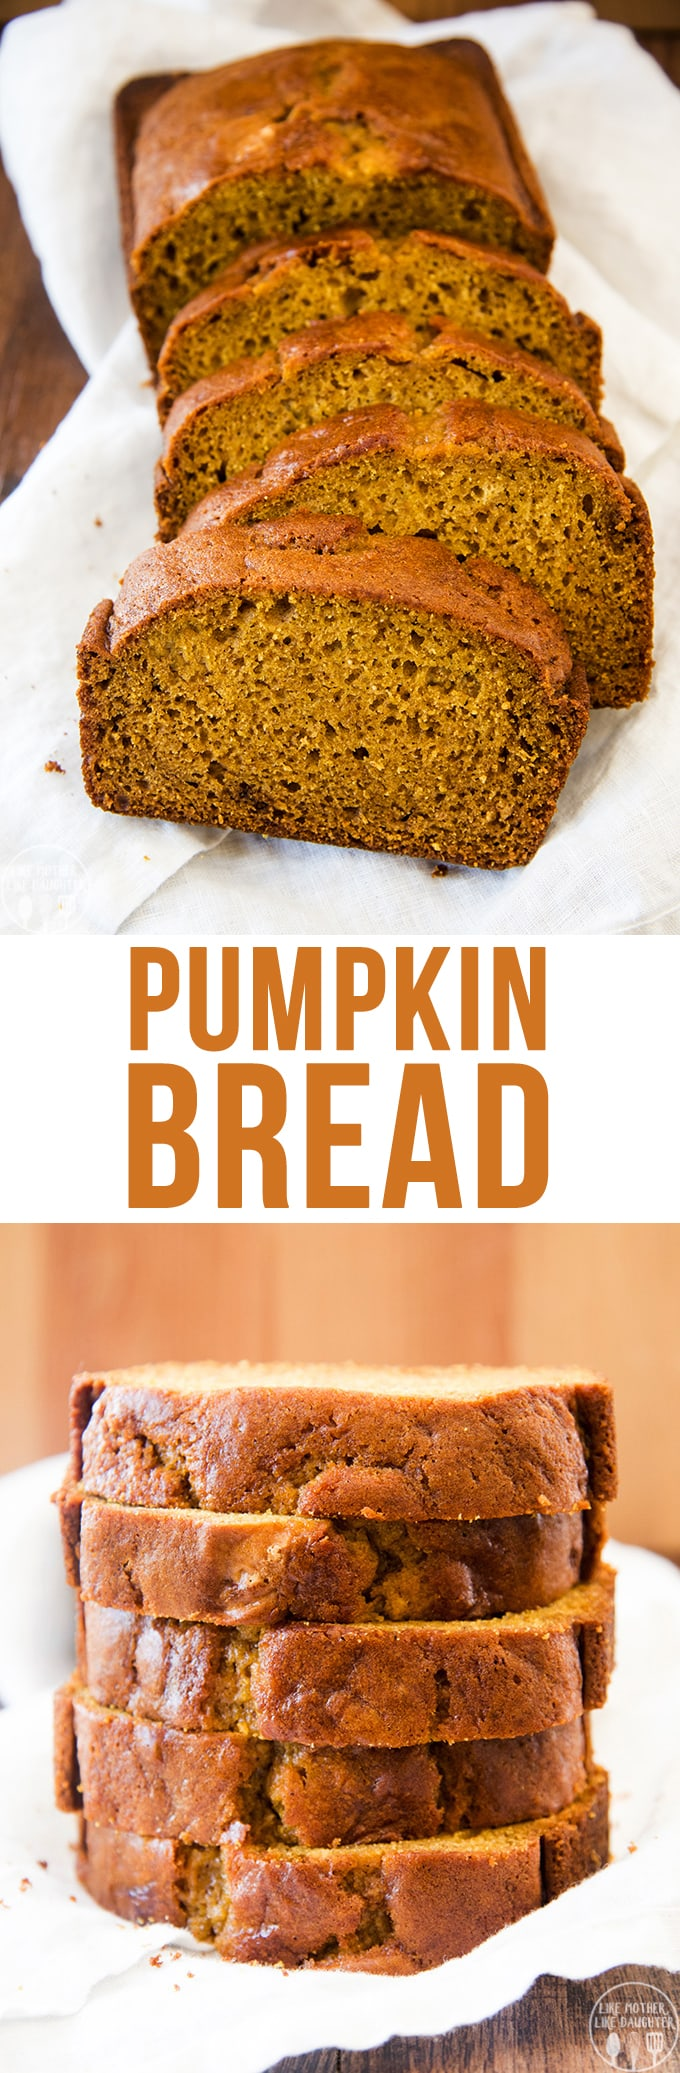 Pumpkin Bread is a perfectly spiced fall favorite, packed full of cinnamon, and pumpkin flavors in a moist, rich and delicious bread.